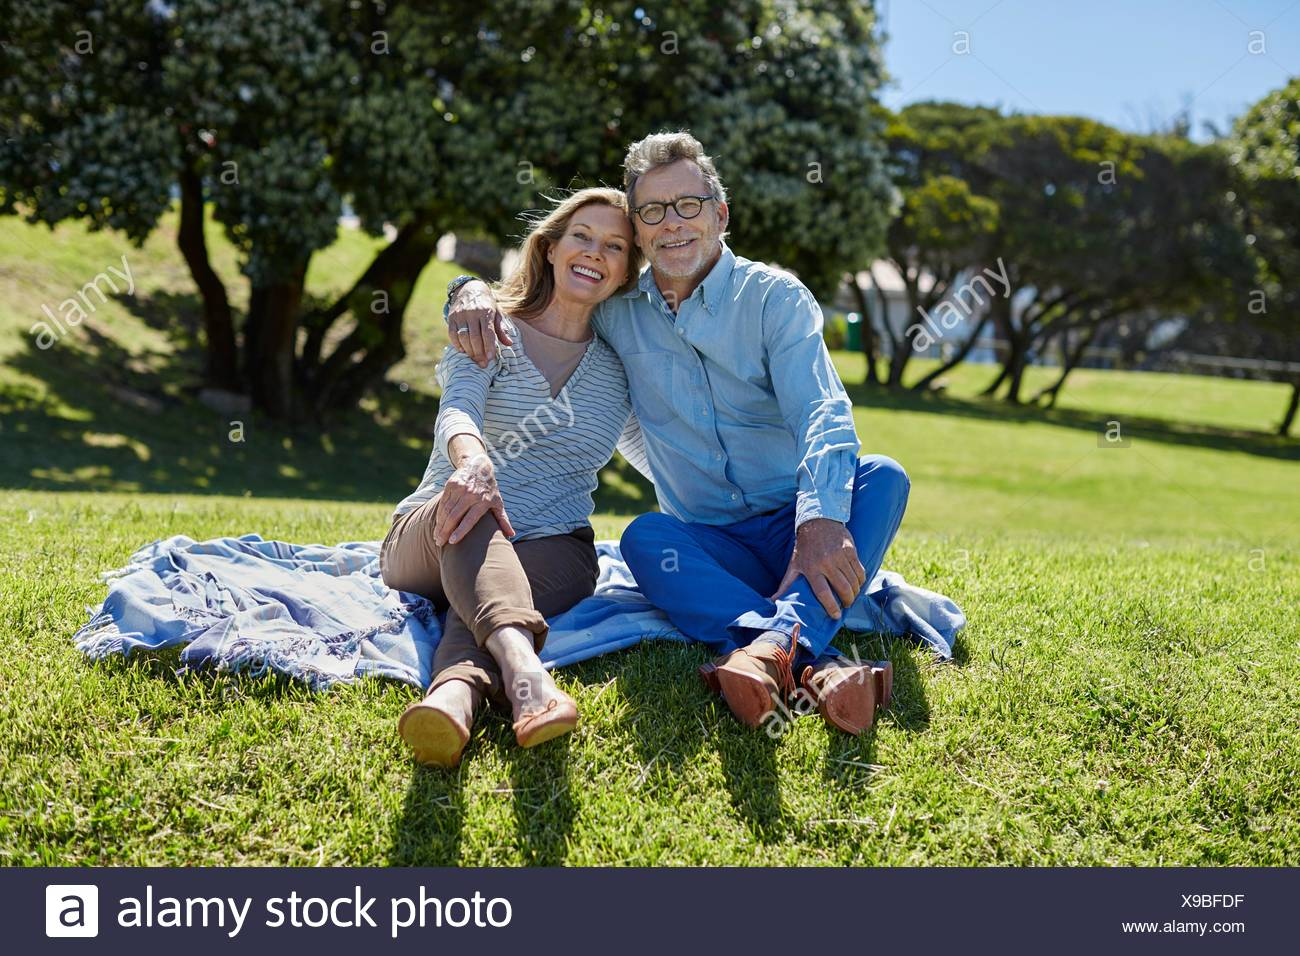 MODEL RELEASED. Senior couple on picnic blanket, arms around each other. - Stock Image